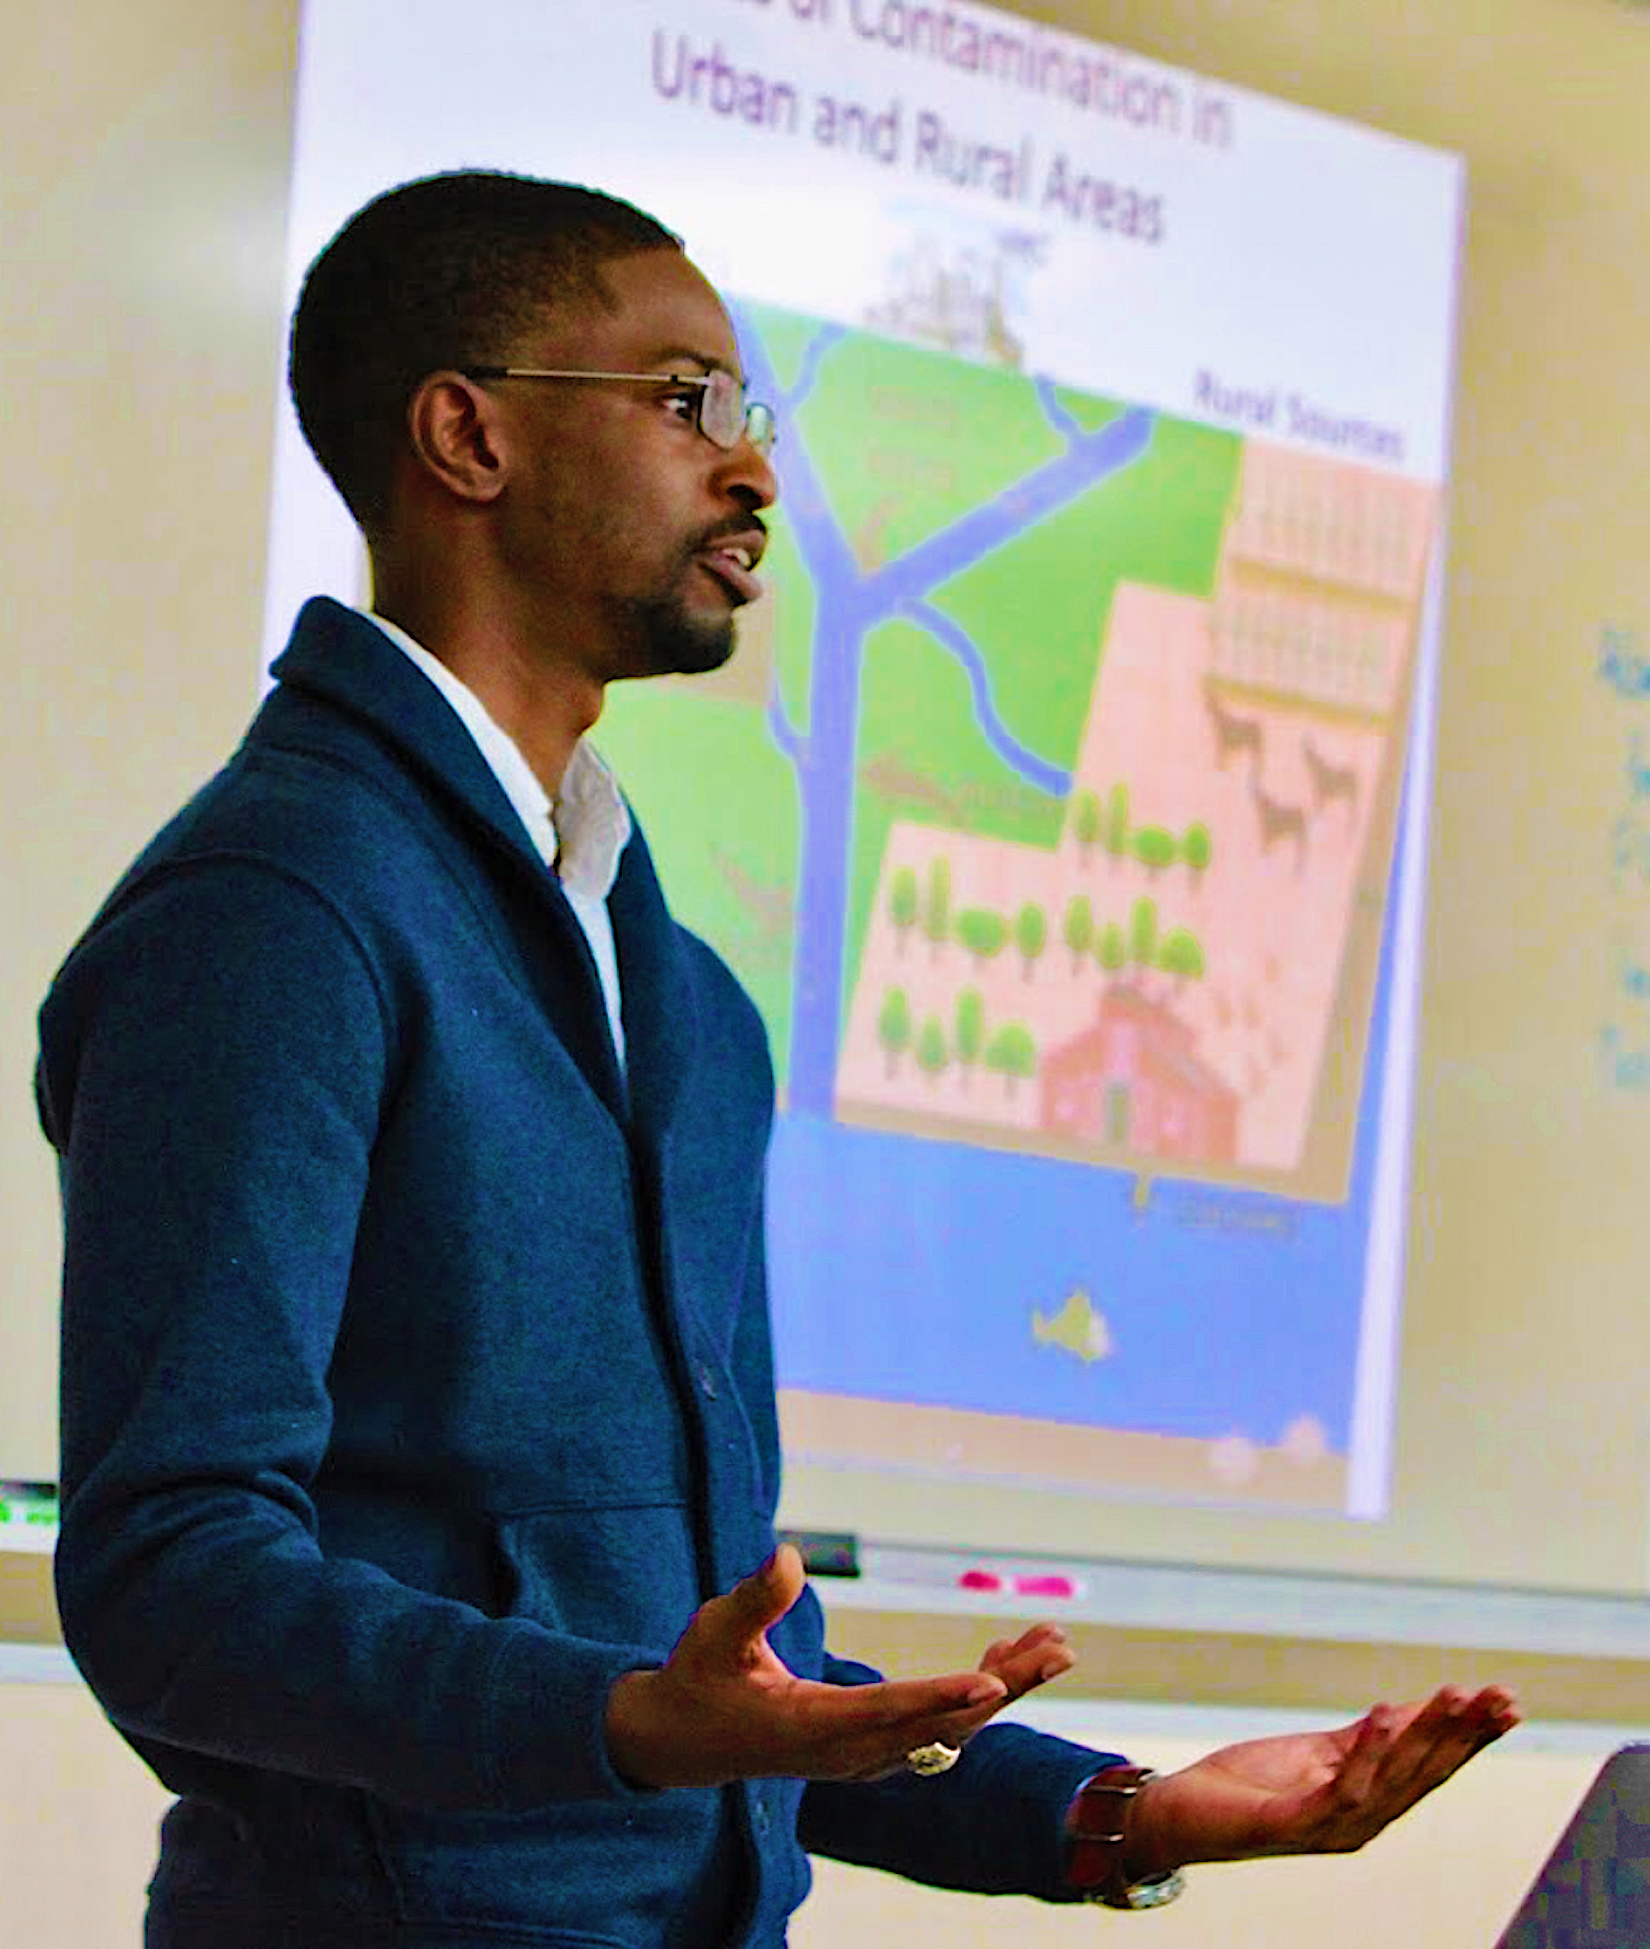 Former joint North Carolina Sea Grant and Water Resources Research Institute Fellow earned his Ph.D. and now works in environmental toxicology.